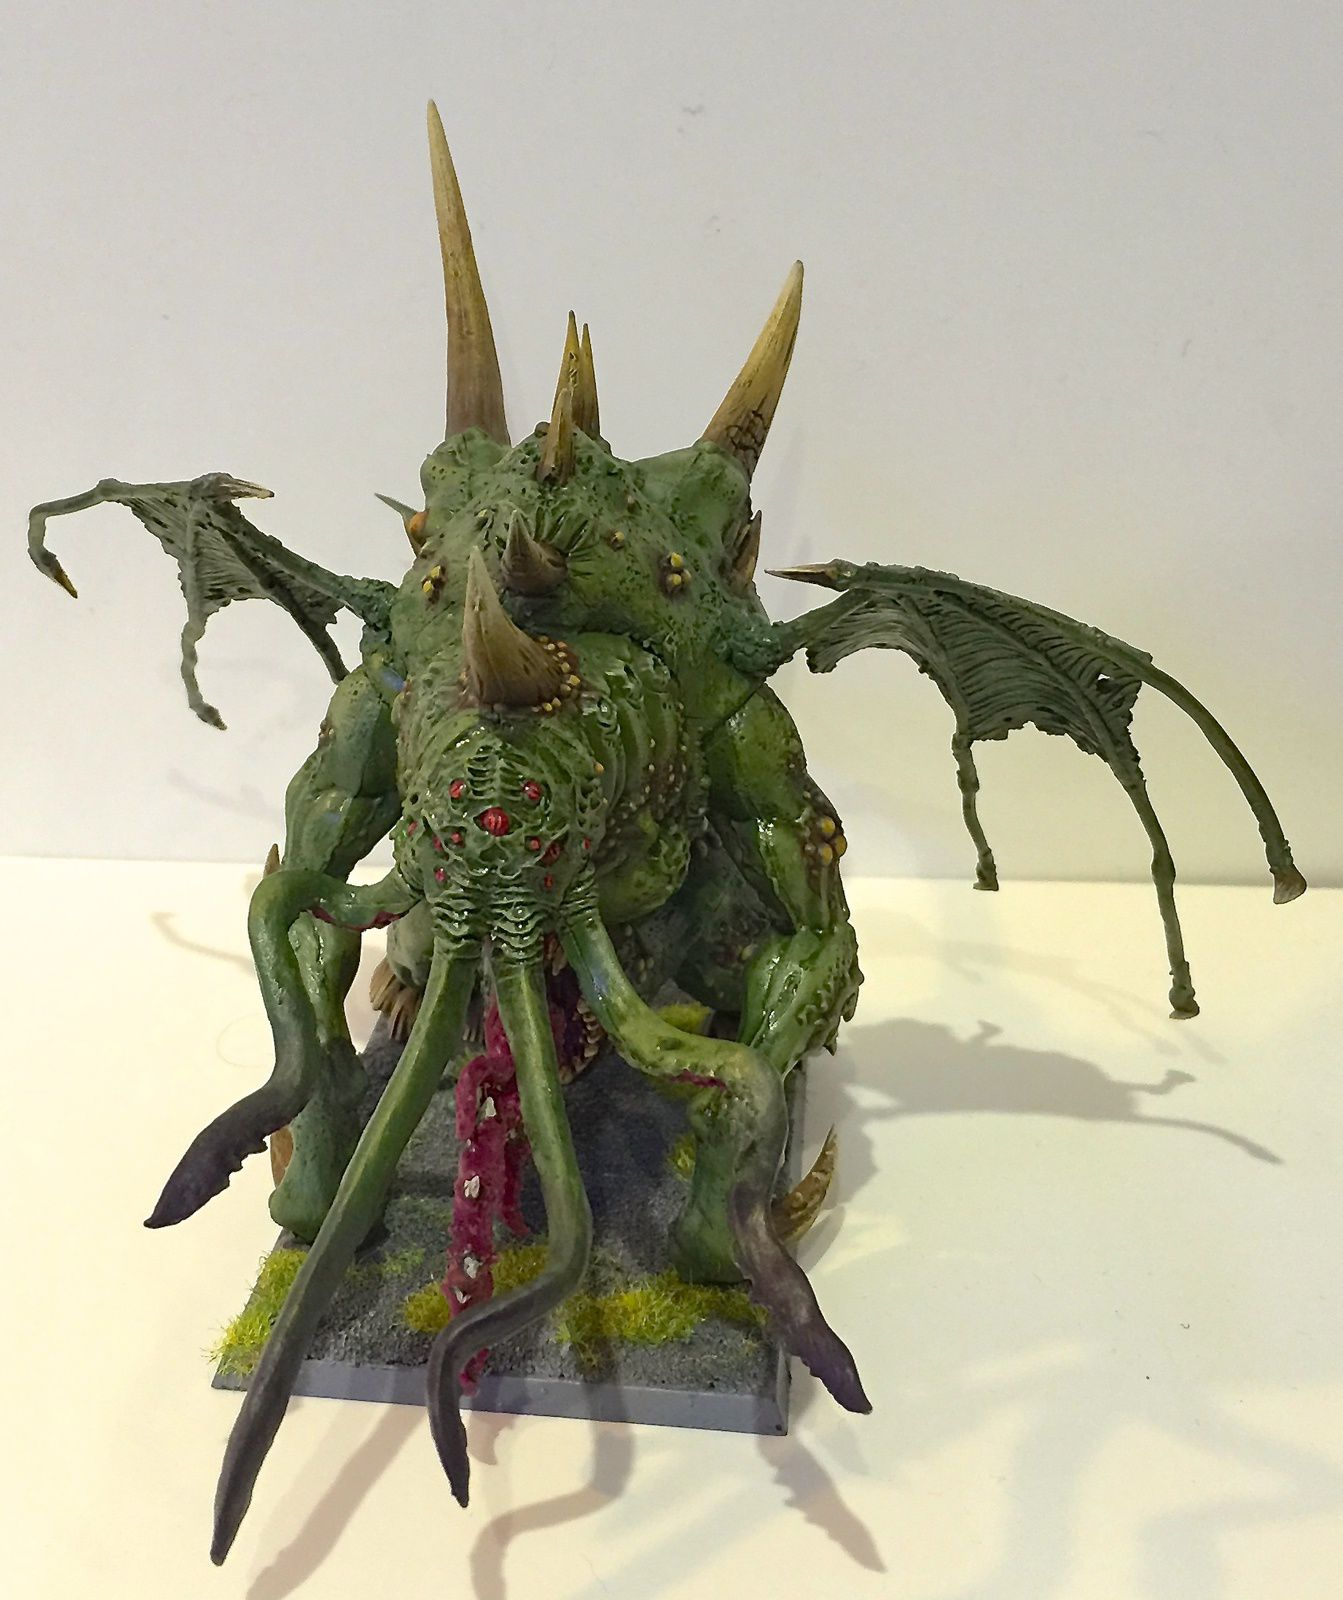 Cthulhu / Nurgle spawn based on Maggoth Lord, finished